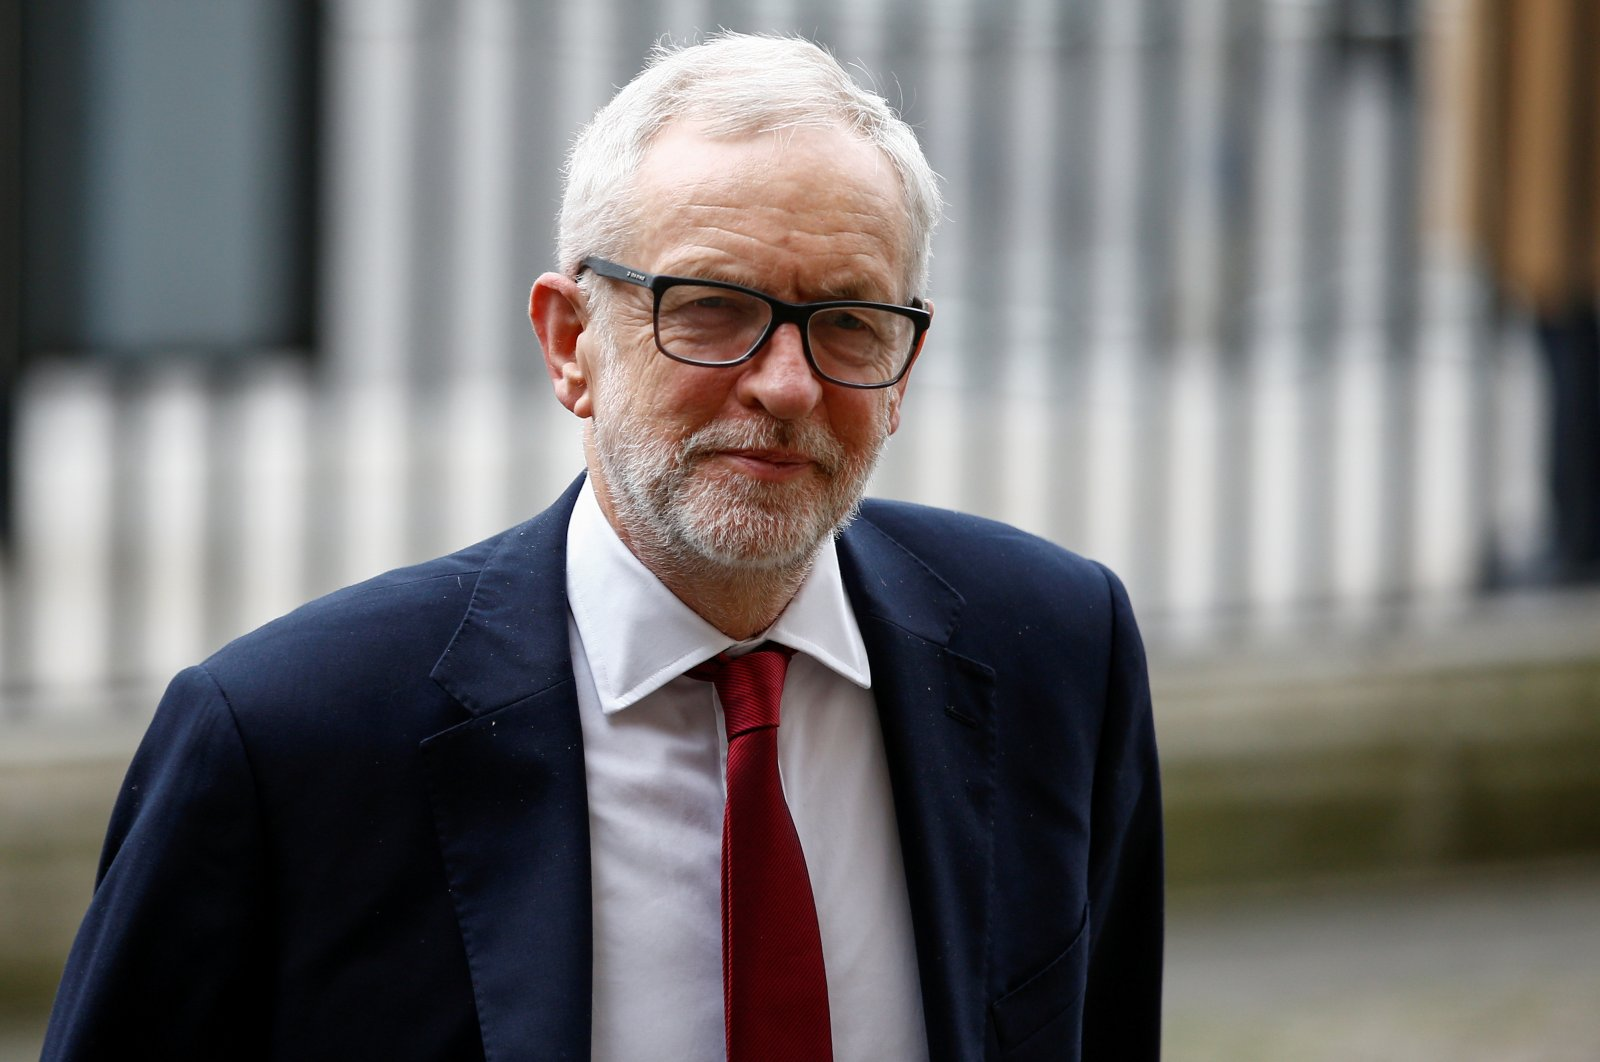 The former leader of Britain's Labour Party Jeremy Corbyn arrives for the annual Commonwealth Service at Westminster Abbey in London, Britain, March 9, 2020. (REUTERS Photo)